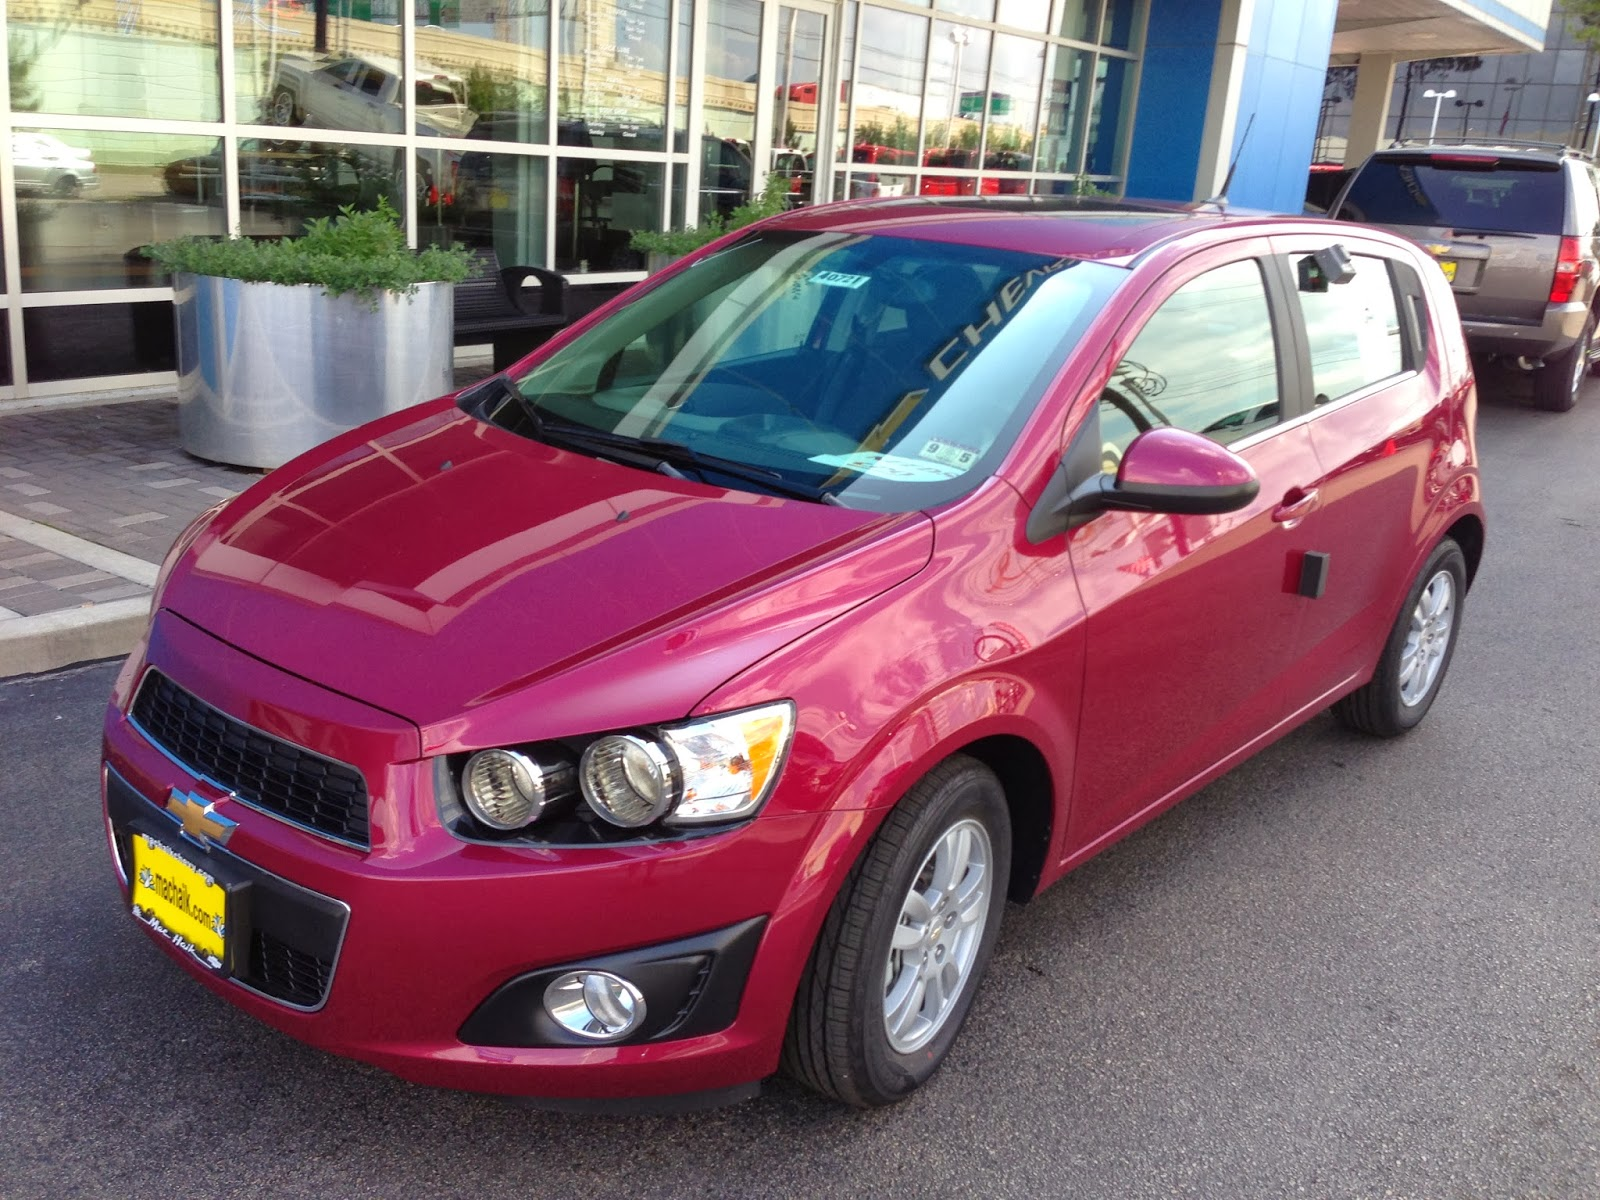 car review first drive 2014 chevrolet sonic hatchback 1 8l. Cars Review. Best American Auto & Cars Review